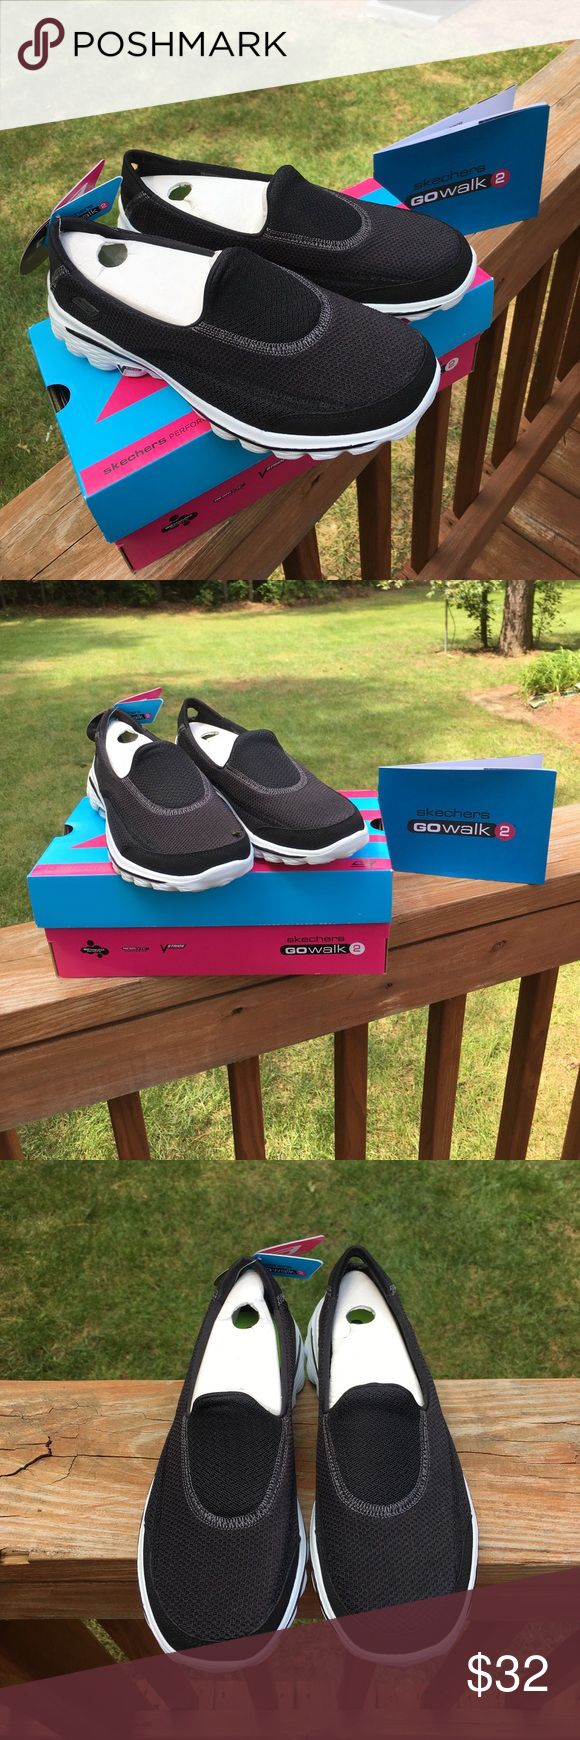 ♠️ NEW Skechers Go Walk 2 Black & White ♠️ ♠️  Skechers Go Walk 2 Black & White OrthoLite Shoes - Brand New w/Box - Size 8.5.  This is one of the most comfortable shoes I have ever worn, but I wear a different size !!  Not only are they comfortable, they are very durable and easy to clean !!  ♠️ Skechers Shoes Athletic Shoes